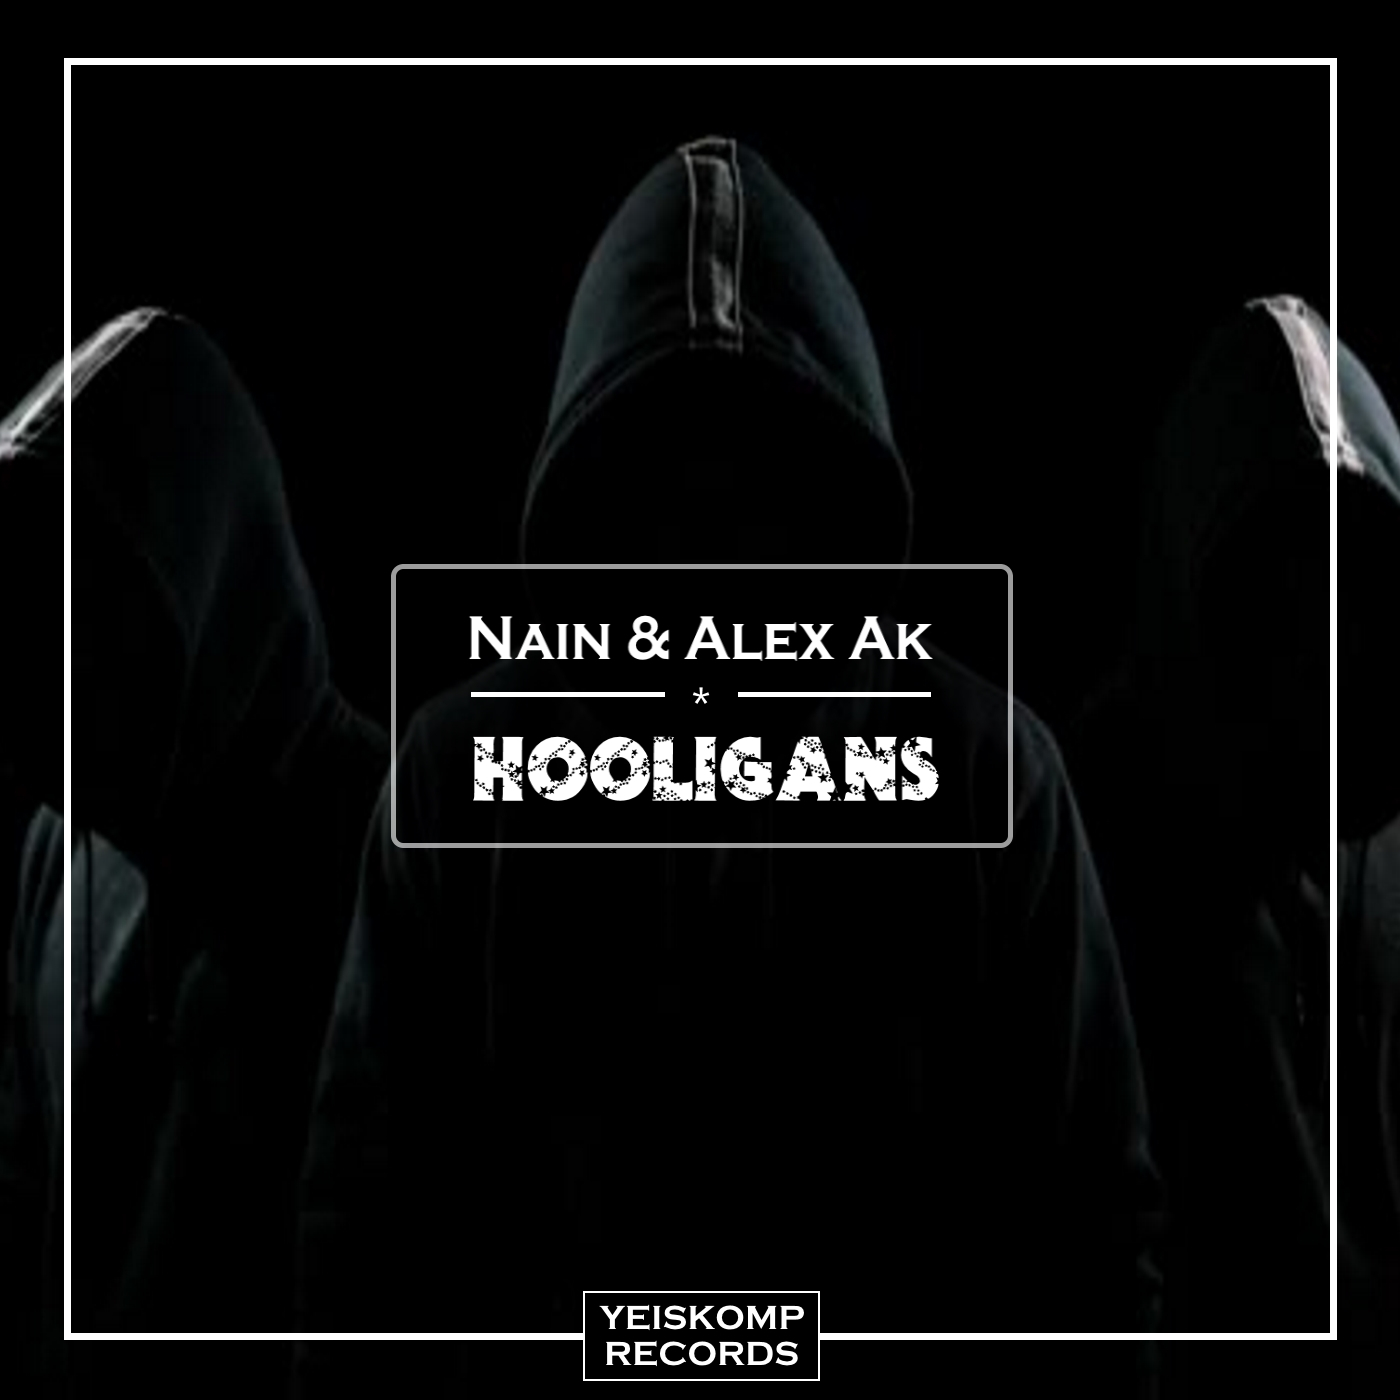 Nain & Alex Ak - Hooligans (Original Mix)